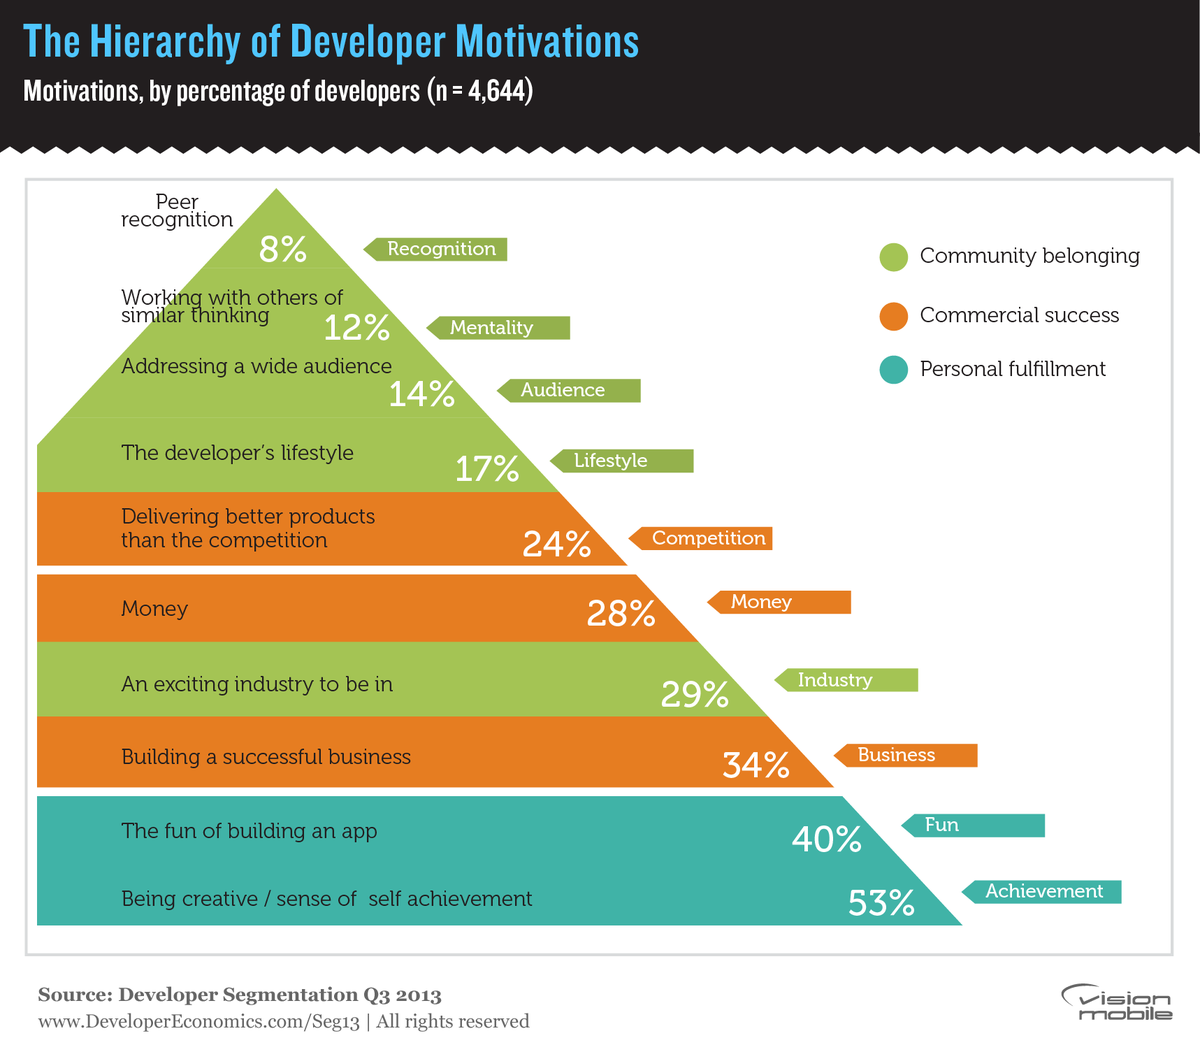 The Hierarchy of Developer Motivations. http://t.co/TGxI8xWKZw